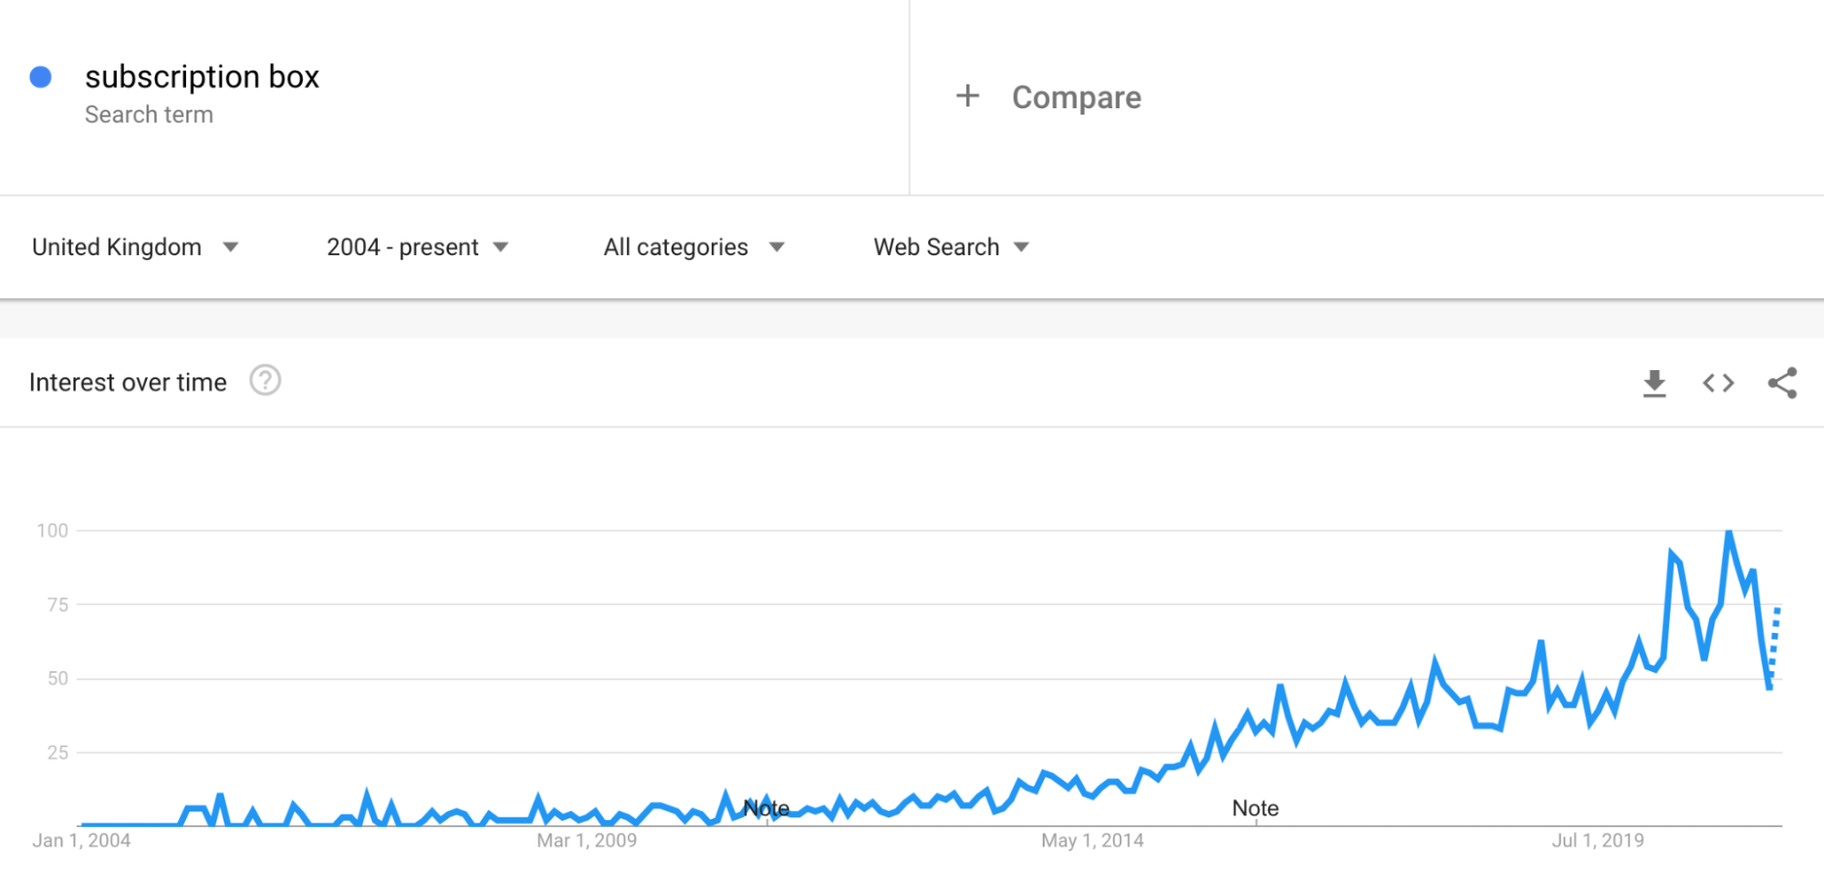 Google Trends: Subscription Boxes